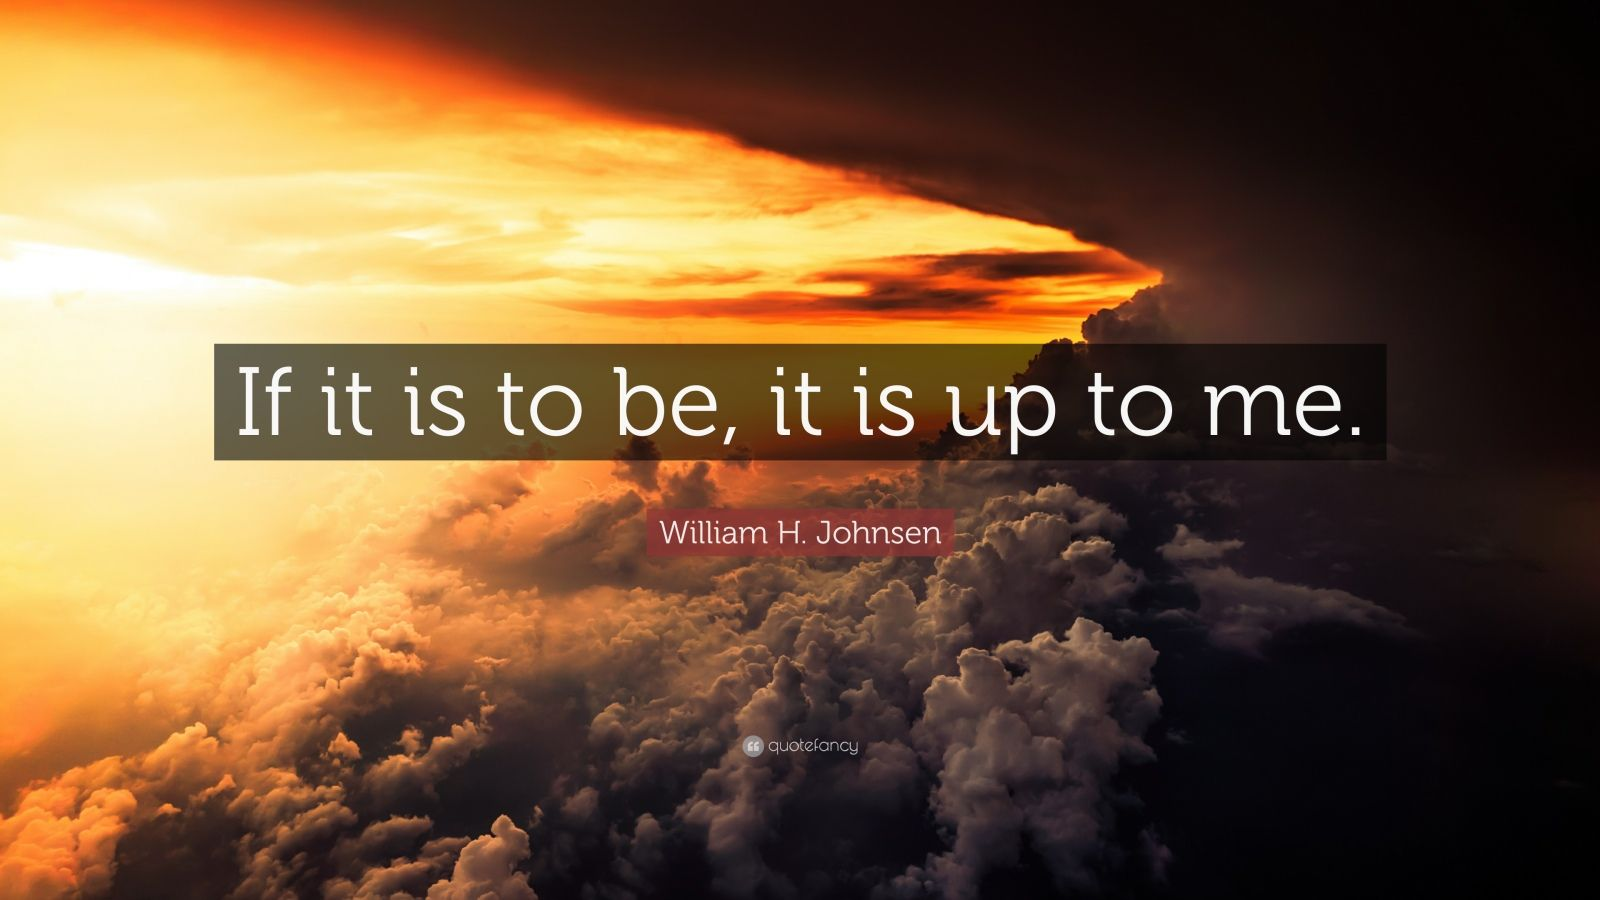 Create Quote Wallpaper William H Johnsen Quote If It Is To Be It Is Up To Me